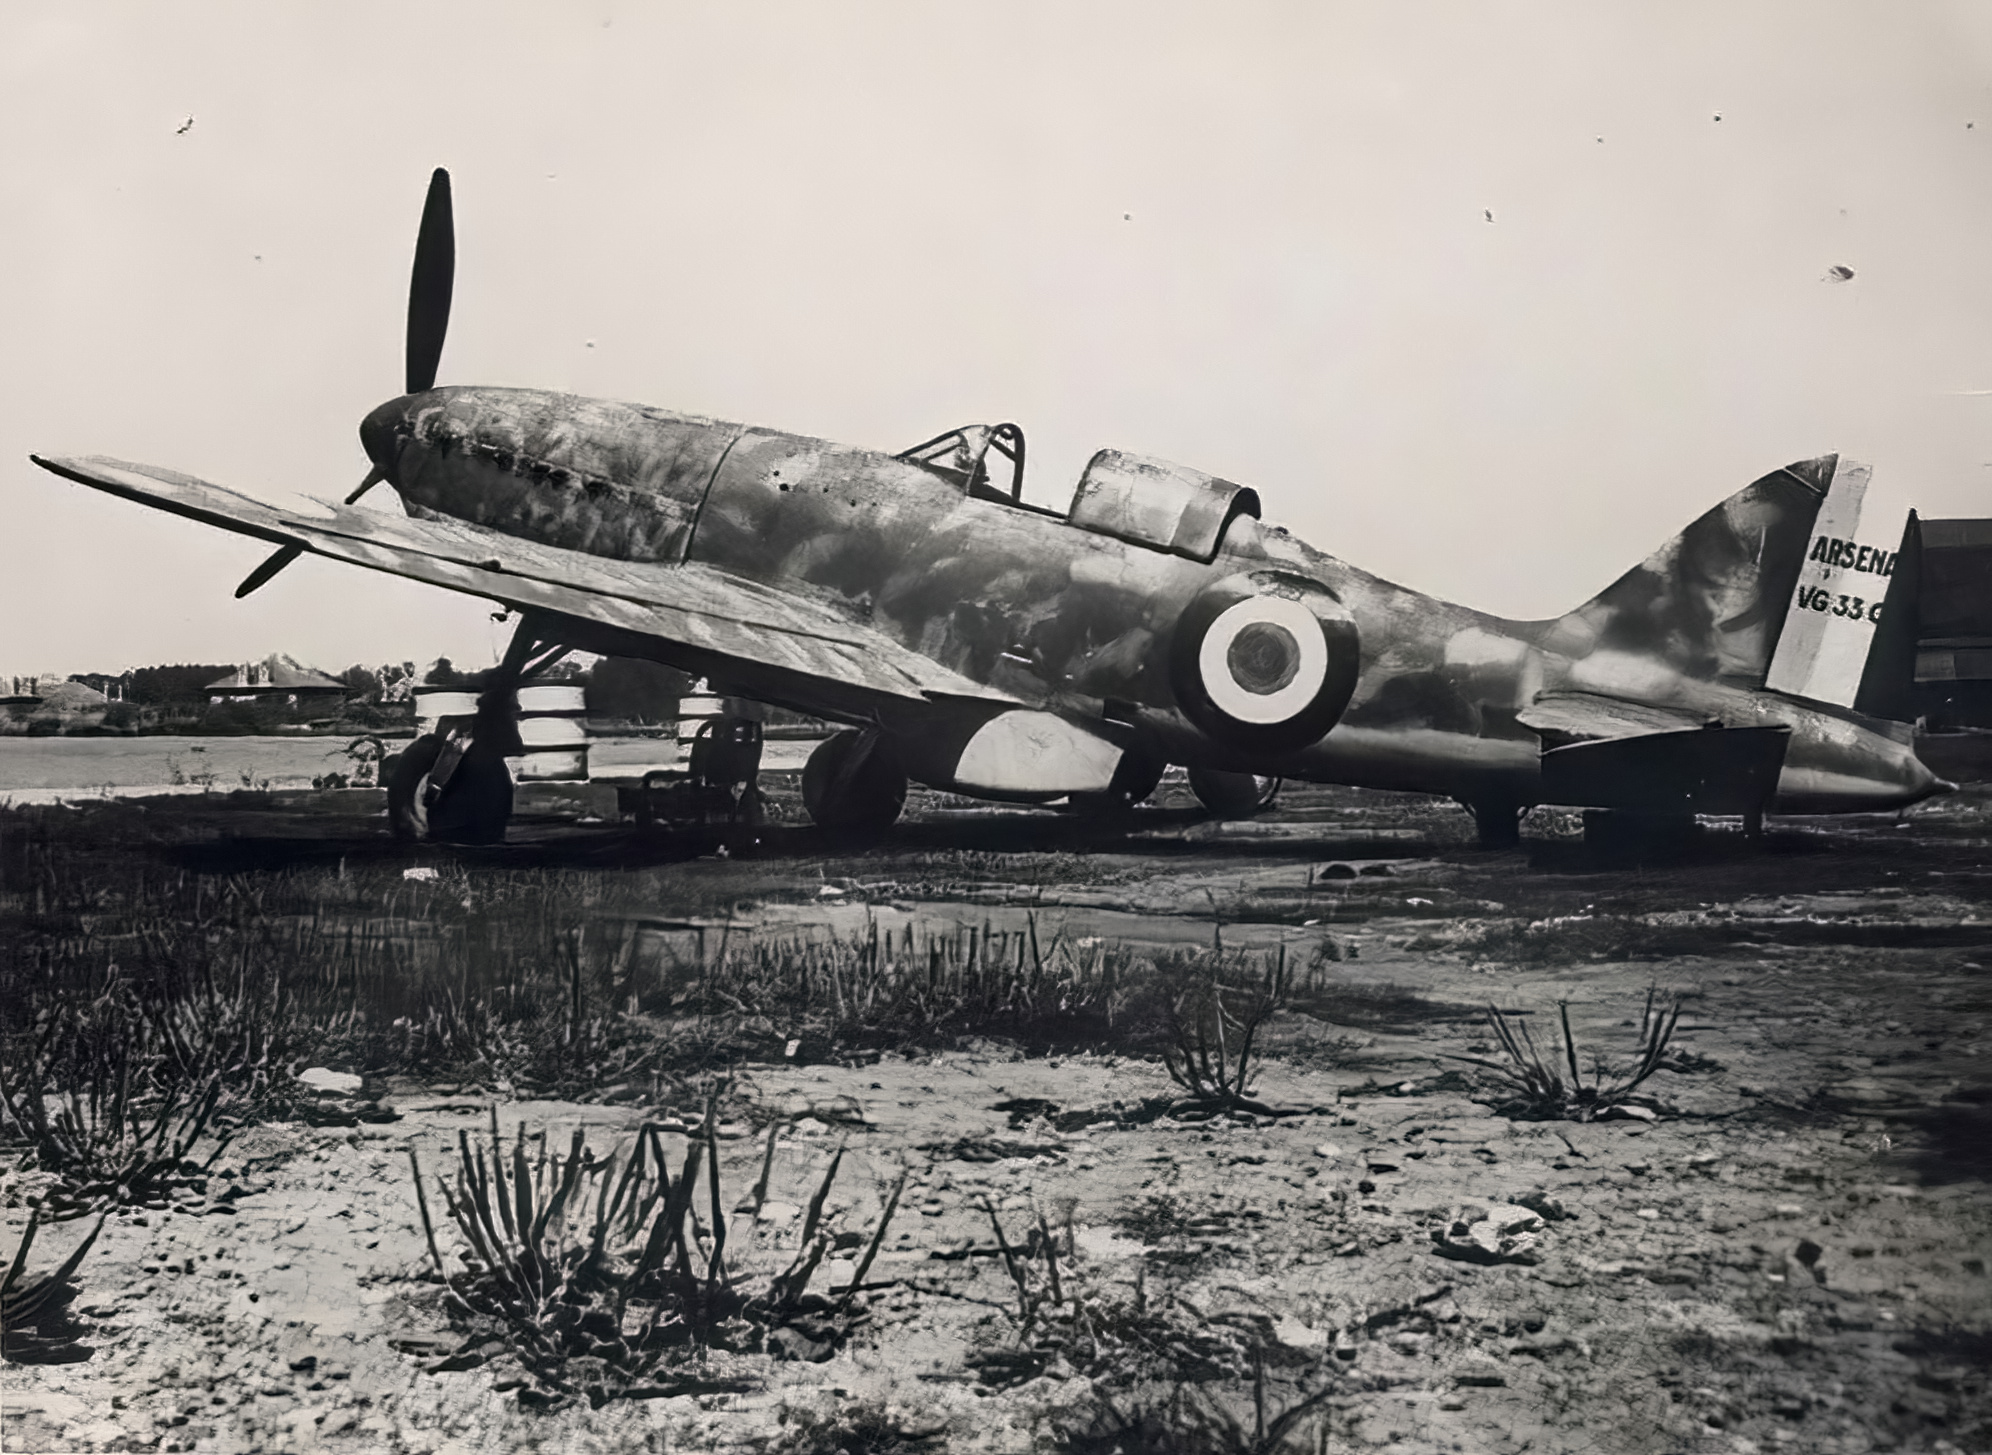 French Airforce Arsenal VG 33 sits abandoned after the fall of France June 1940 ebay 06